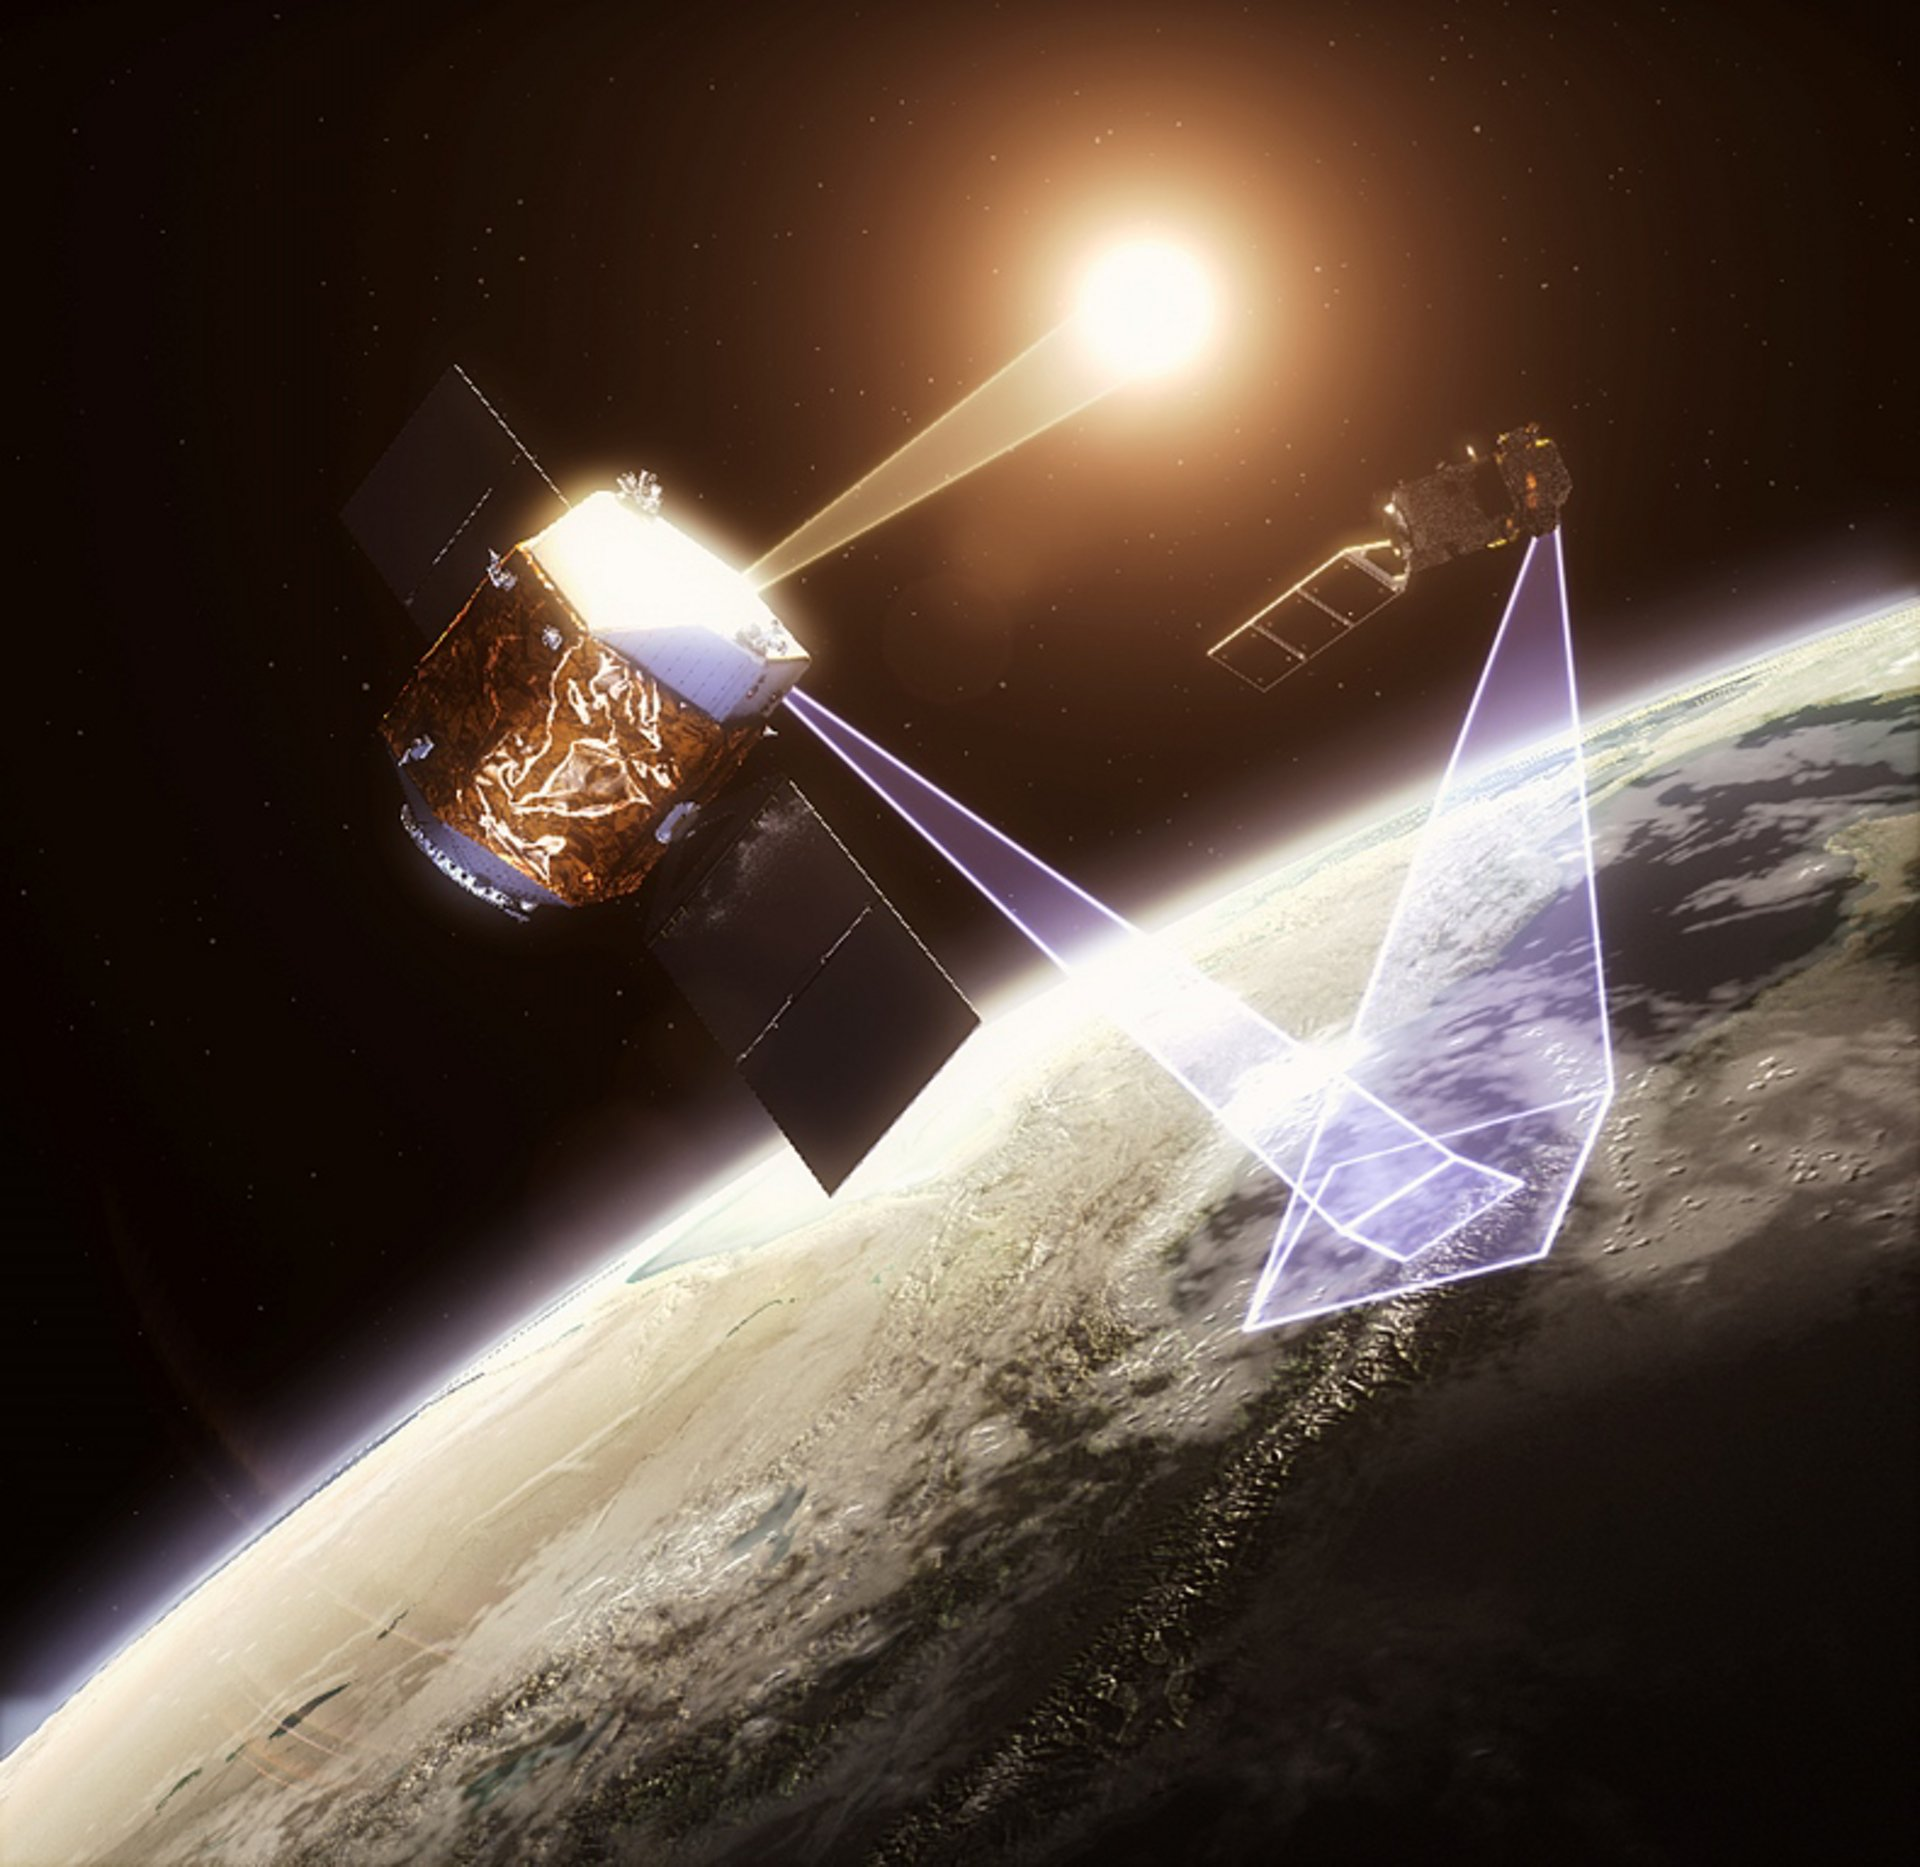 The TRUTHS satellite mission will collect measurements of the Sun radiation and of the sunlight reflected off Earth's surface traced to an absolute metrological reference, which will then be used to improve the climatological data sets and calibrate the observations of other satellites.